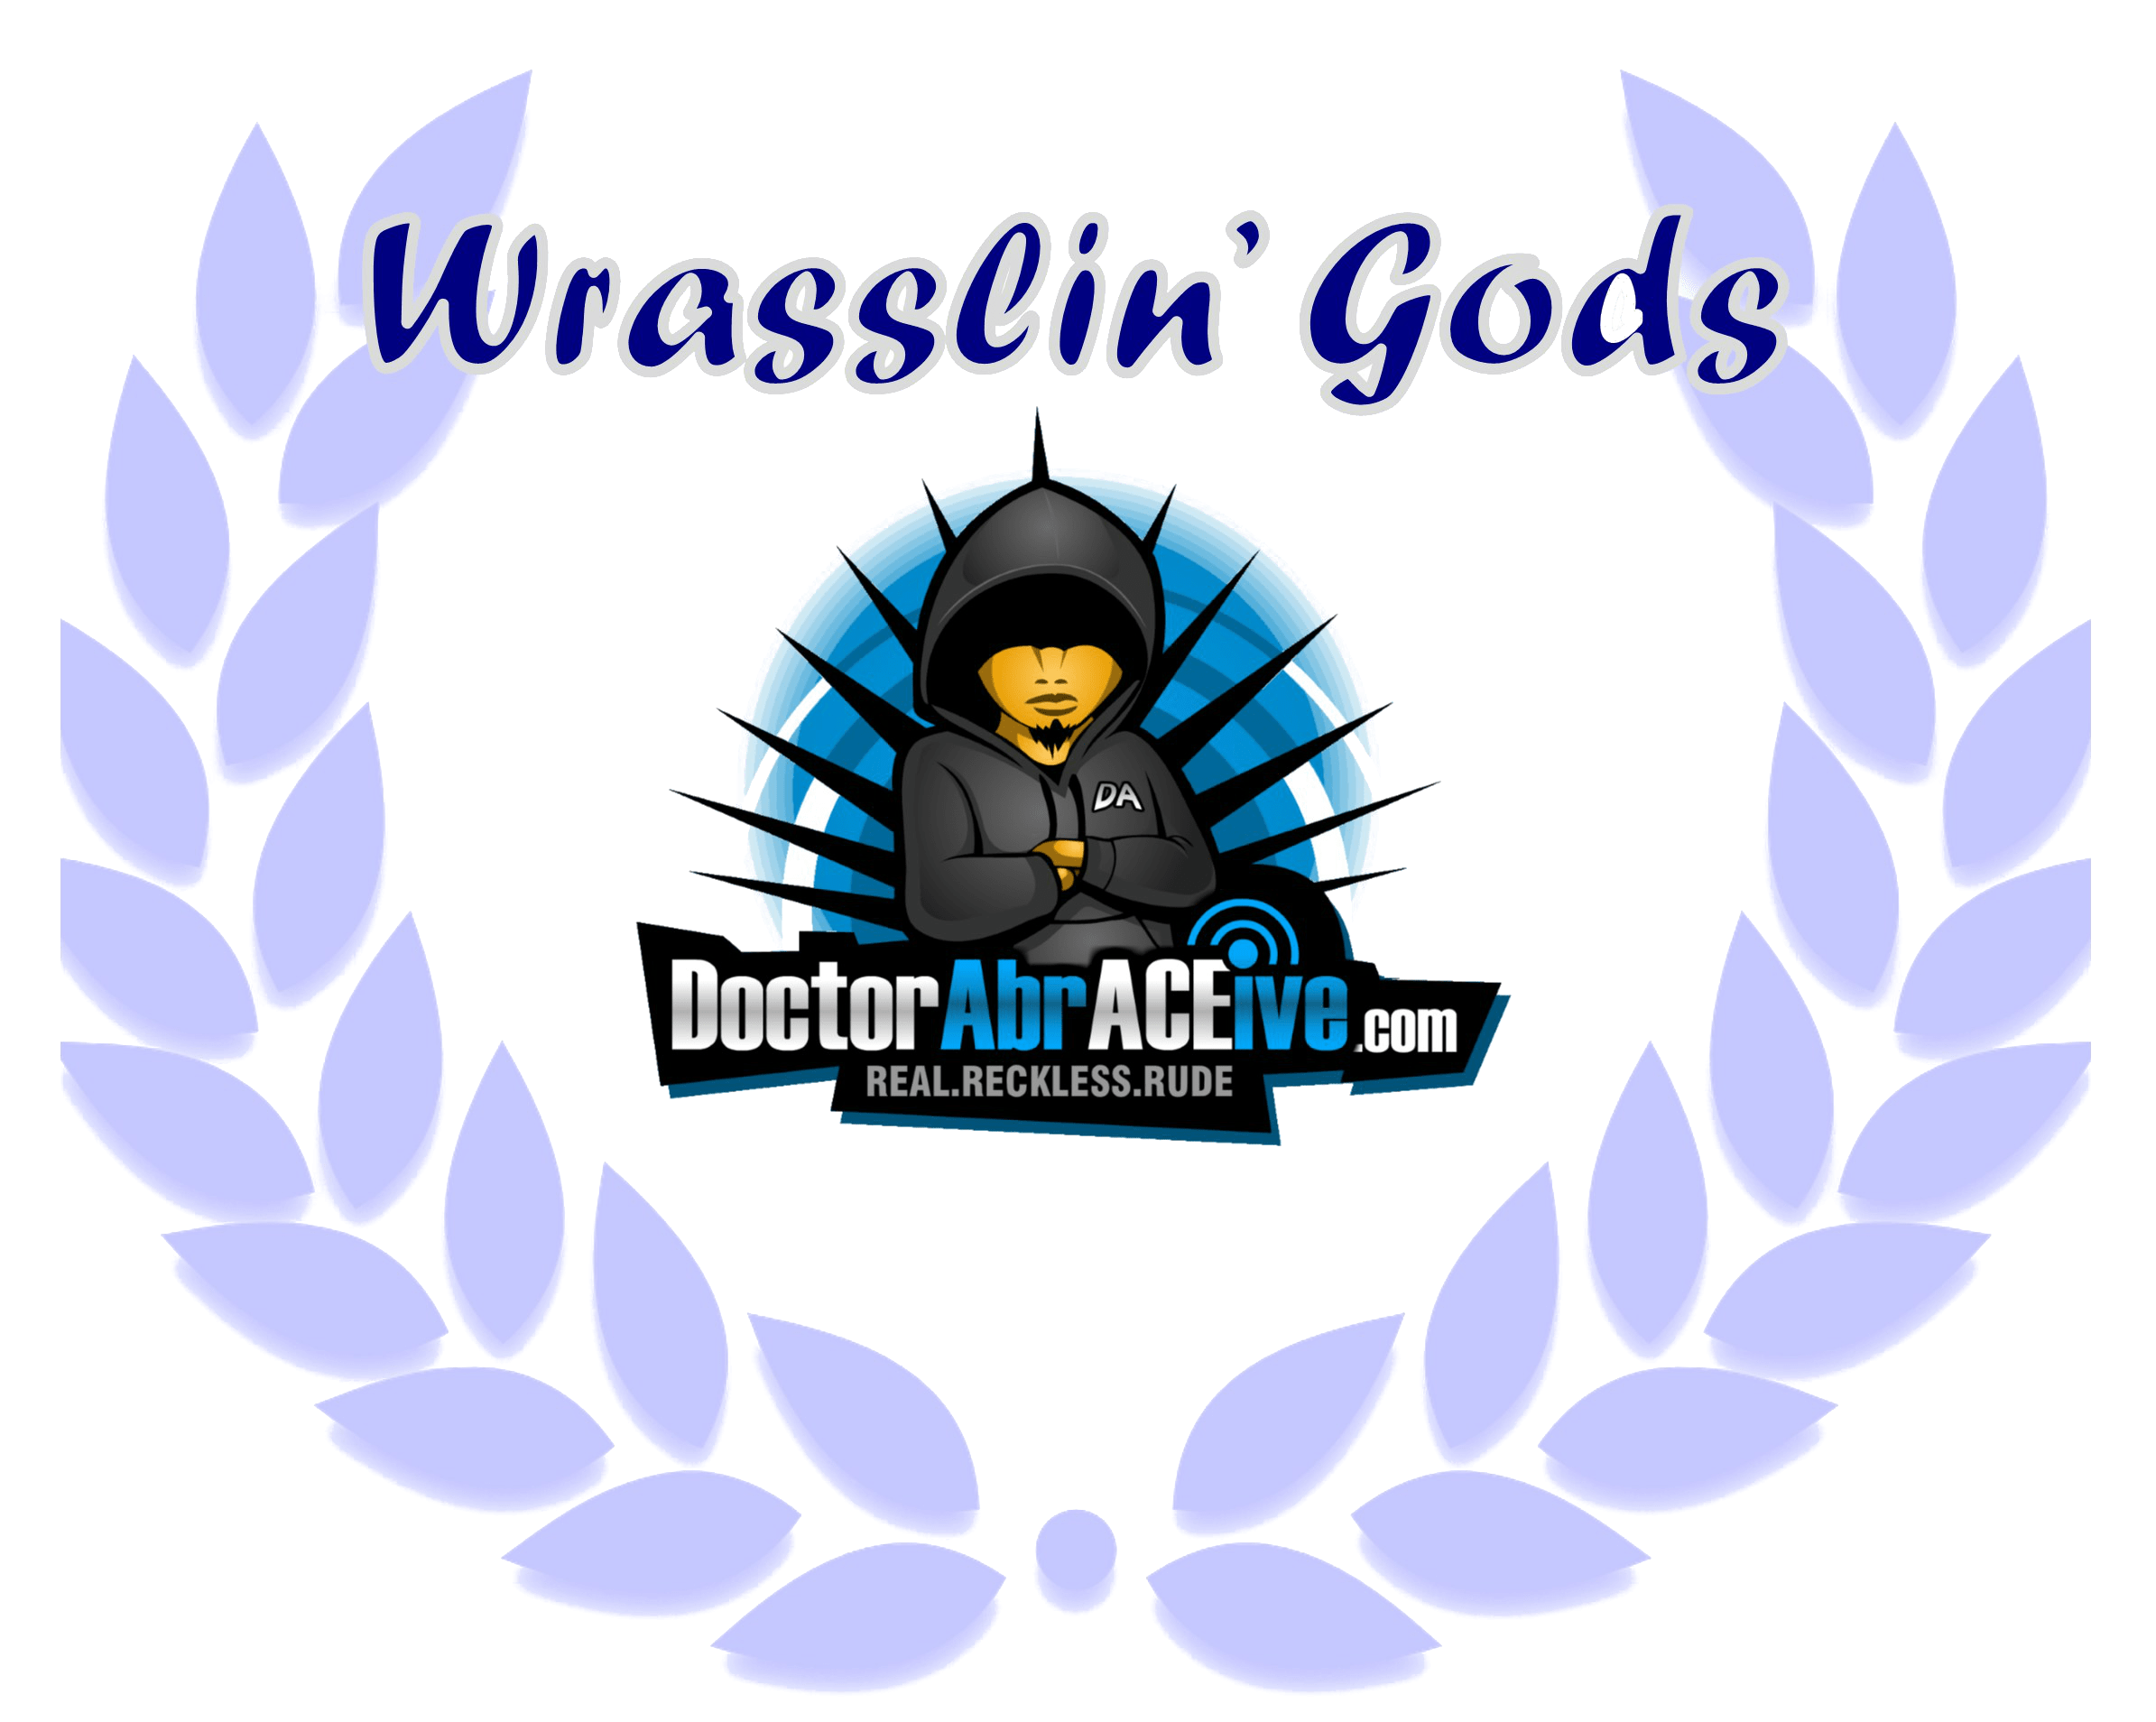 Wrasslin Gods 7: Evolved